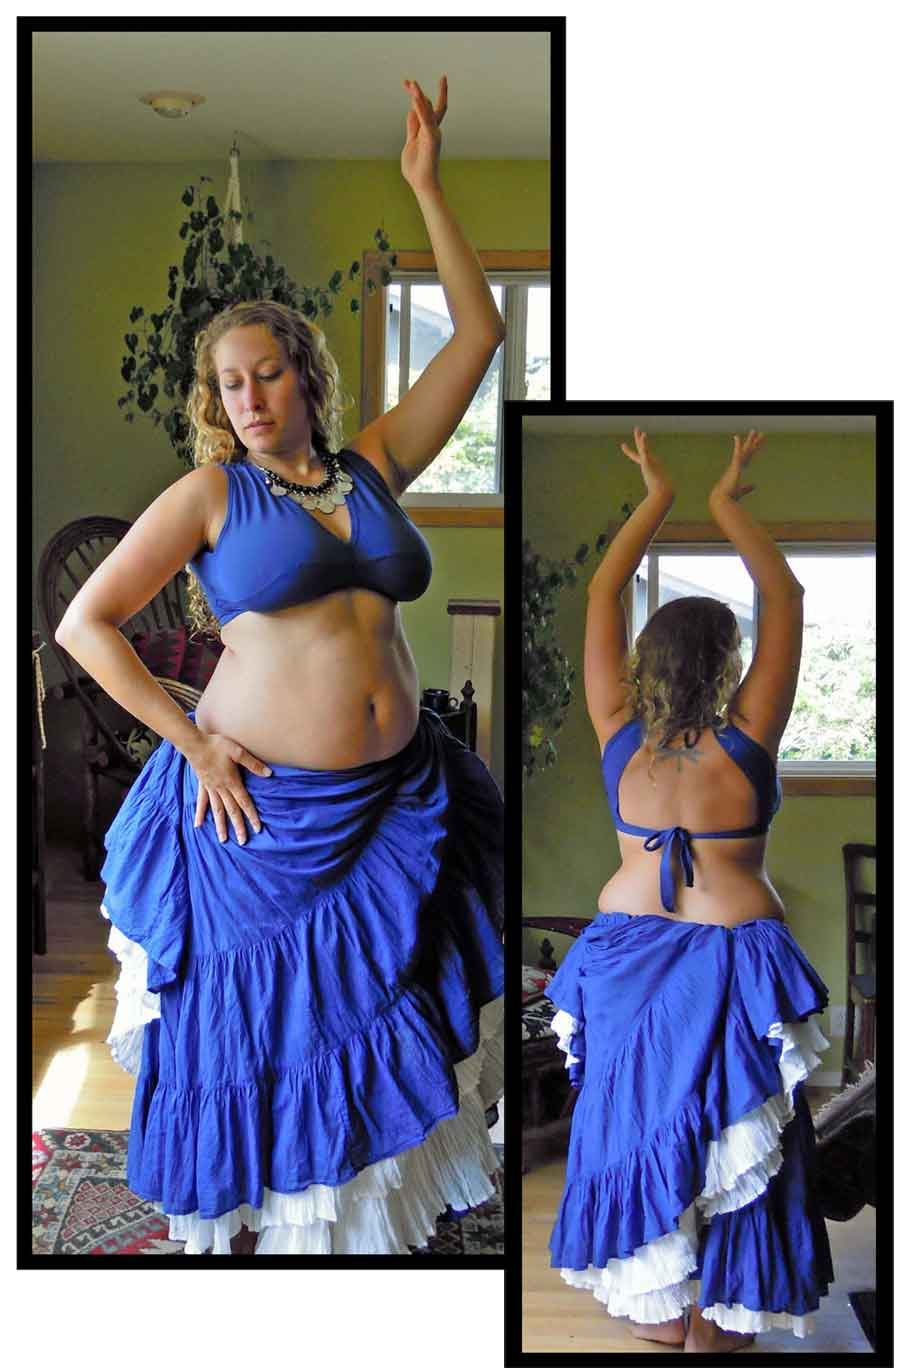 b3ae214c56d Flying Skirts Tribal Belly Dance Costumes  Sleeveless Choli